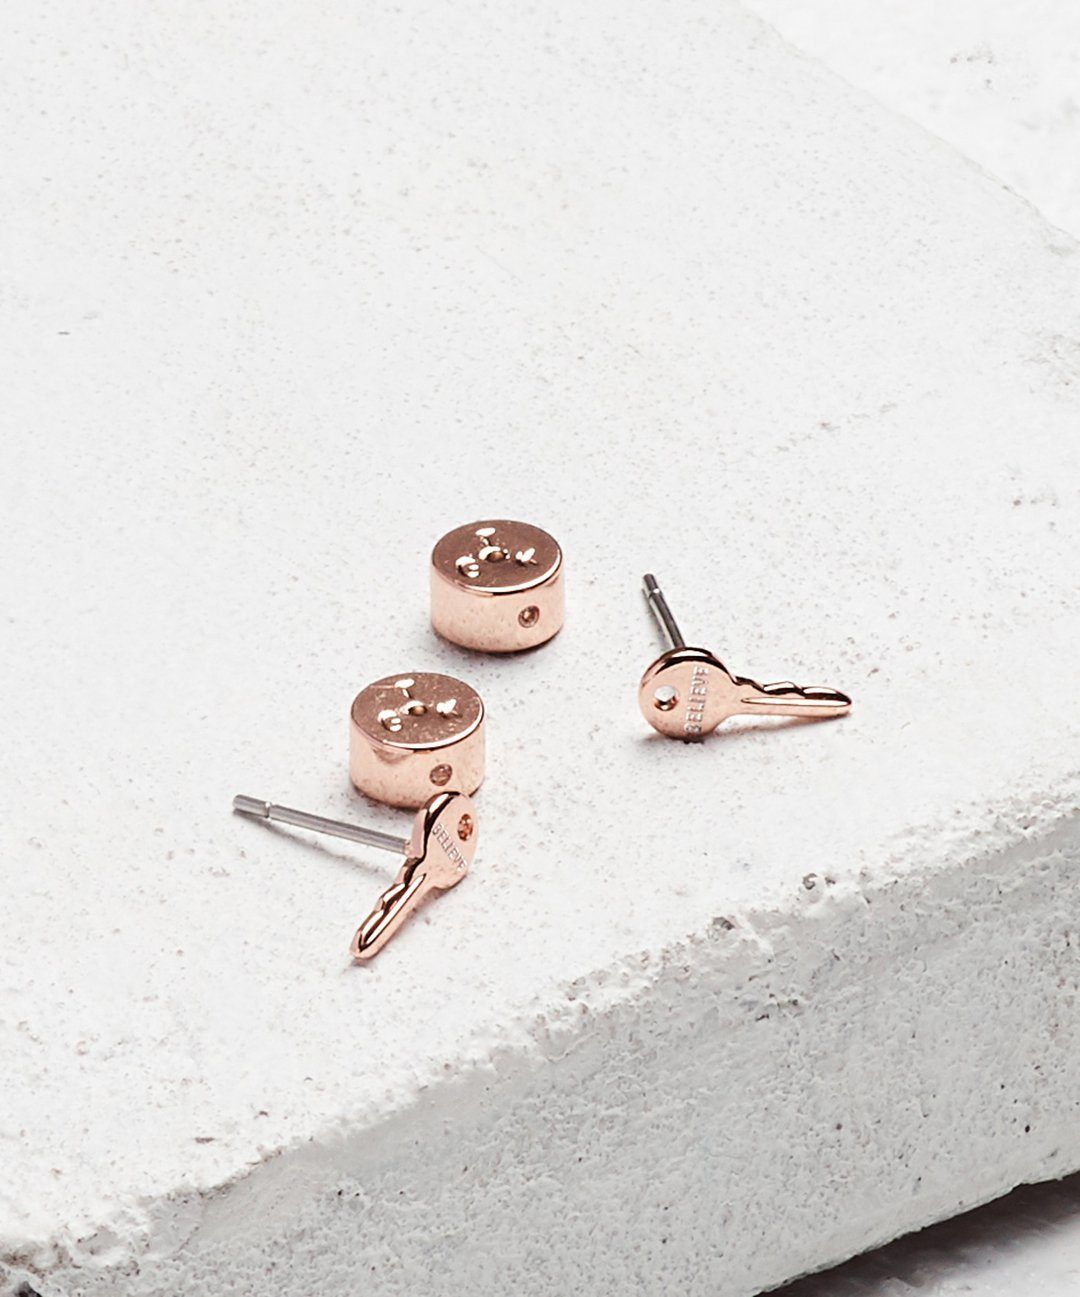 Rose Gold Mini Key Post Earrings Earrings The Giving Keys BELIEVE Rose Gold